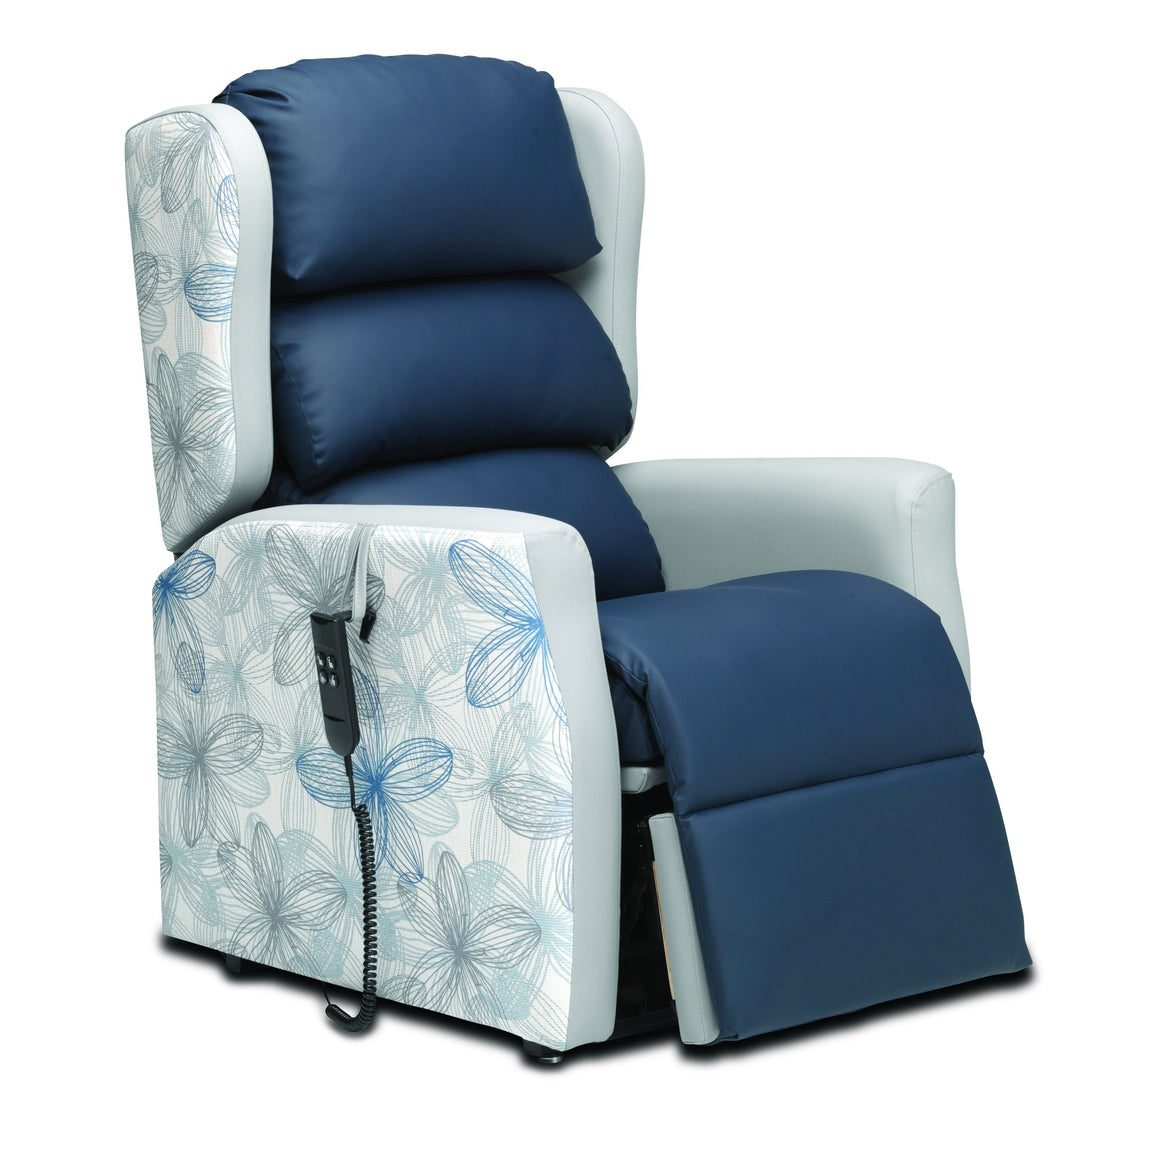 Multi C-air Healthcare Chair Supplied by BP4D